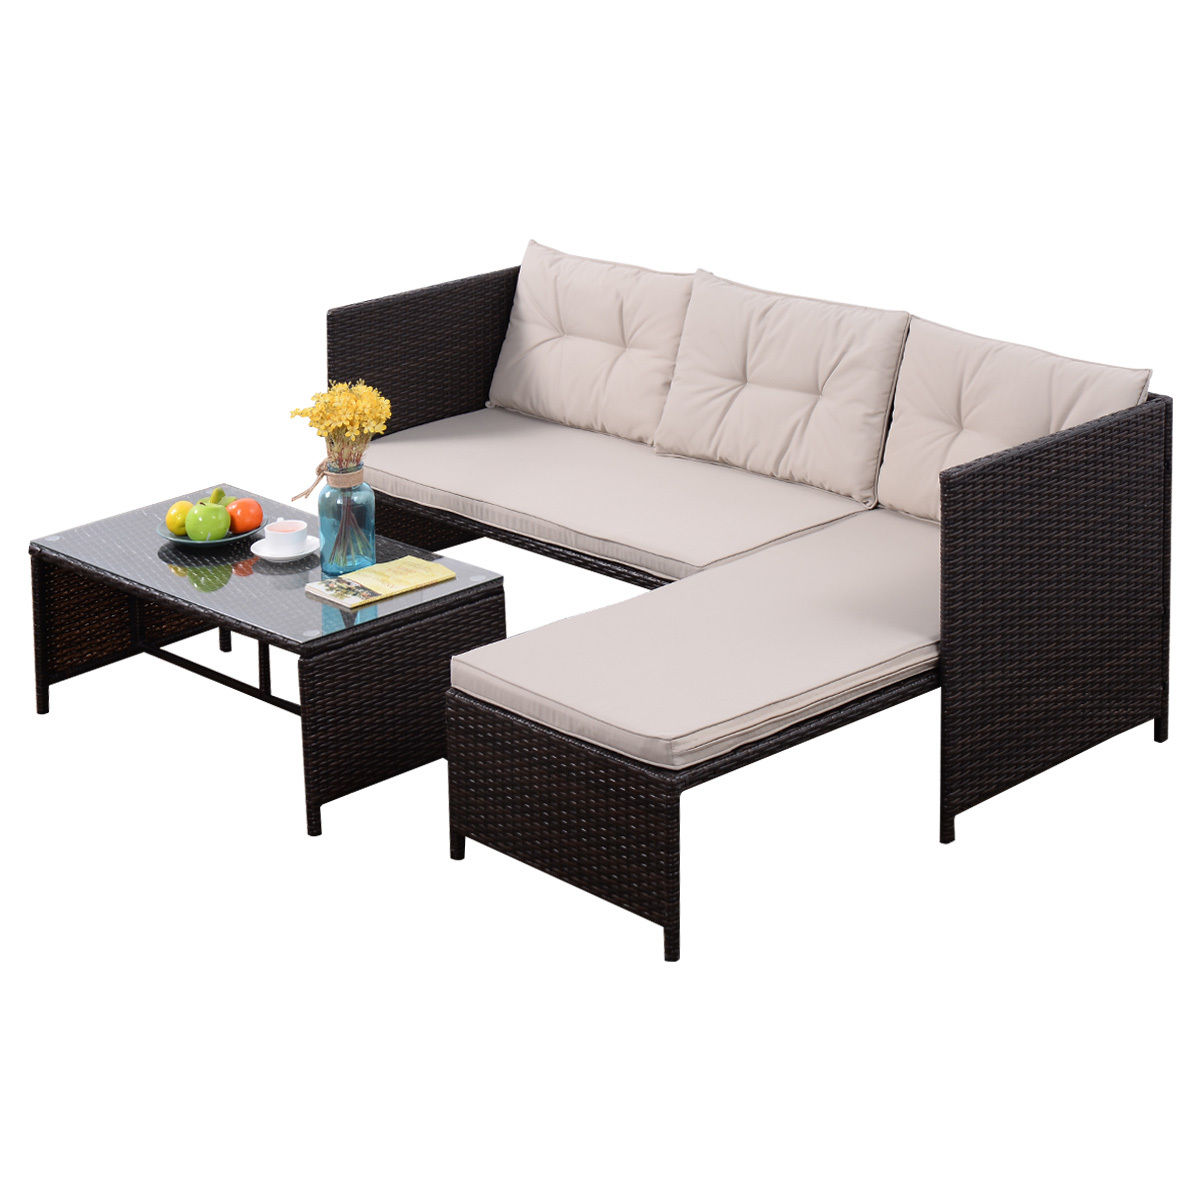 Rattan 3 Piece Sofa Goplus 3 Pcs Outdoor Rattan Furniture Sofa Set Lounge Chaise Cushioned Patio Garden